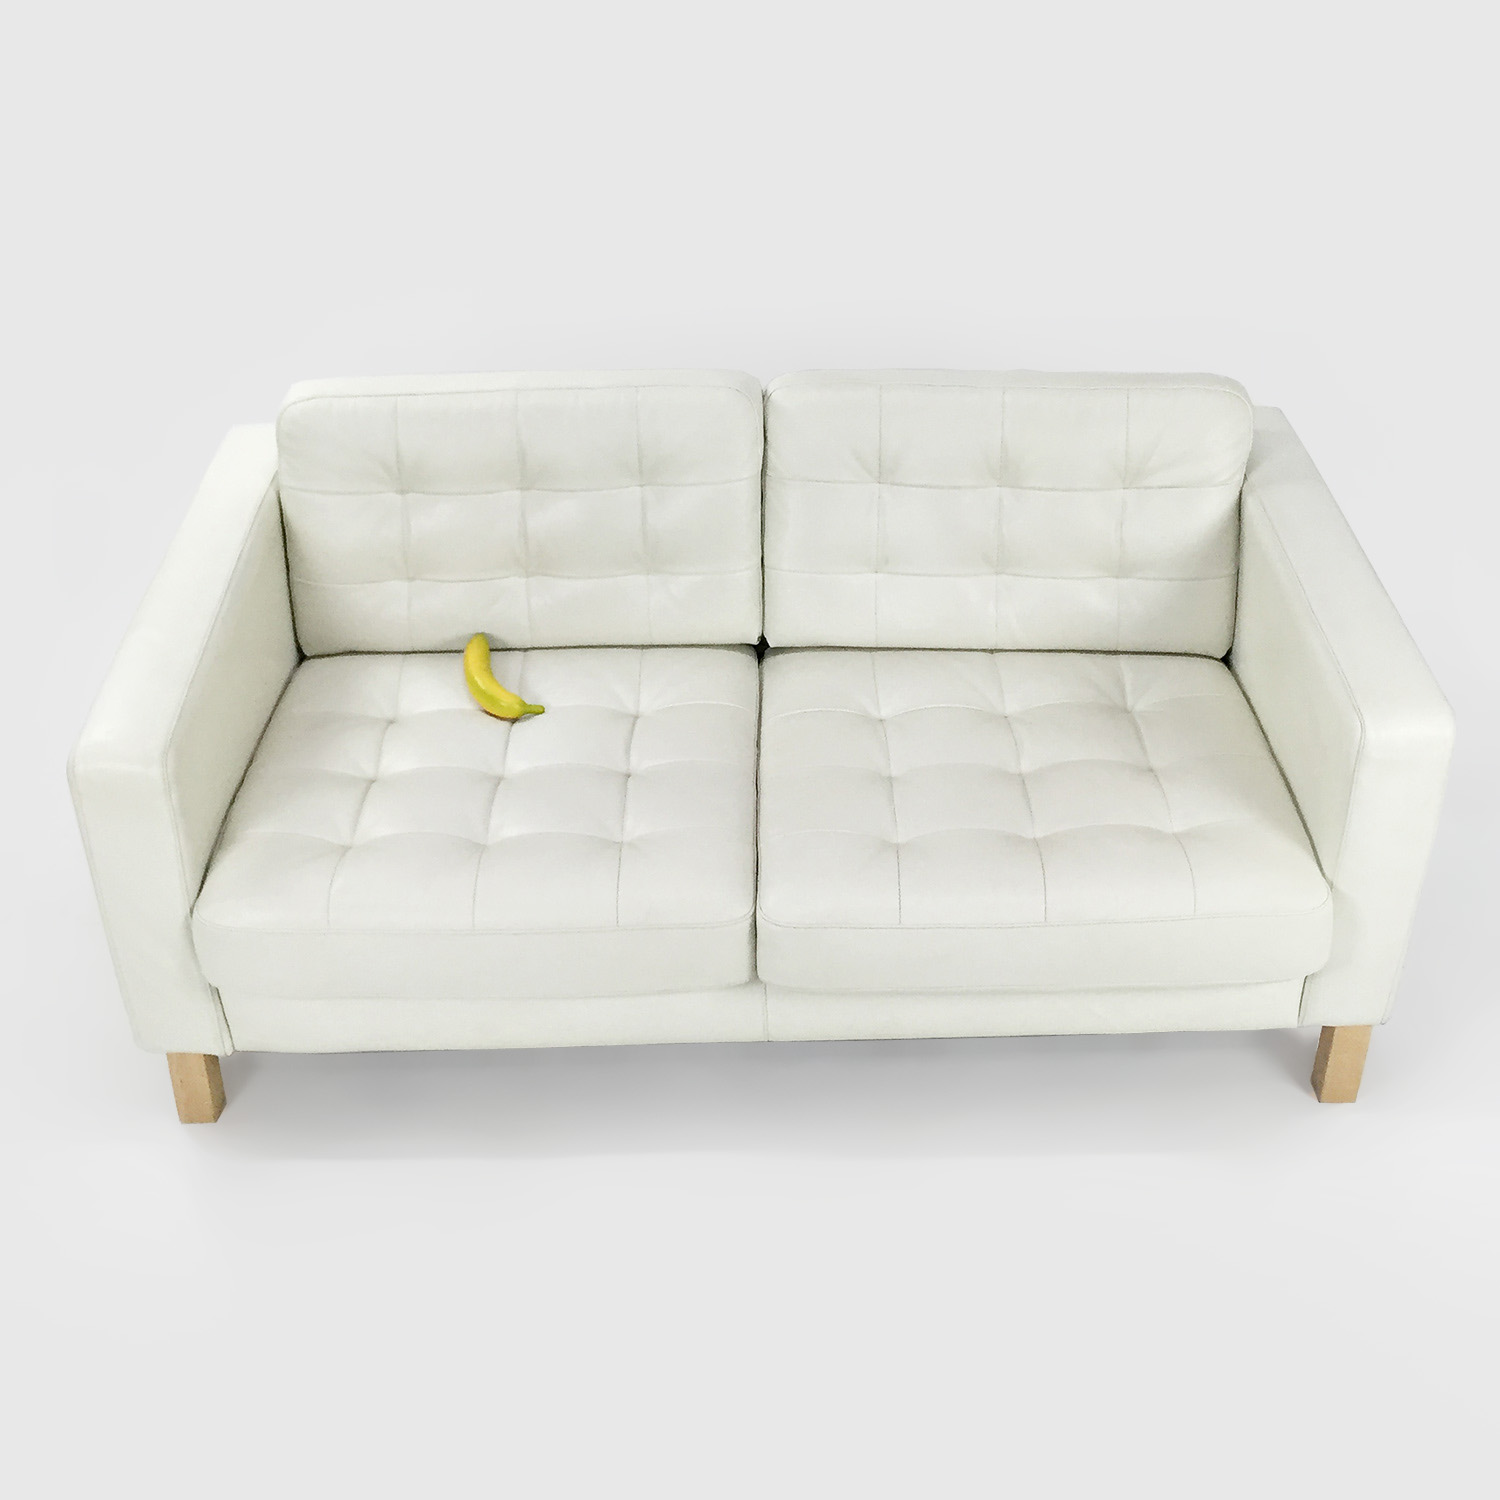 Good ... Buy White Leather Couch IKEA Sofas ...